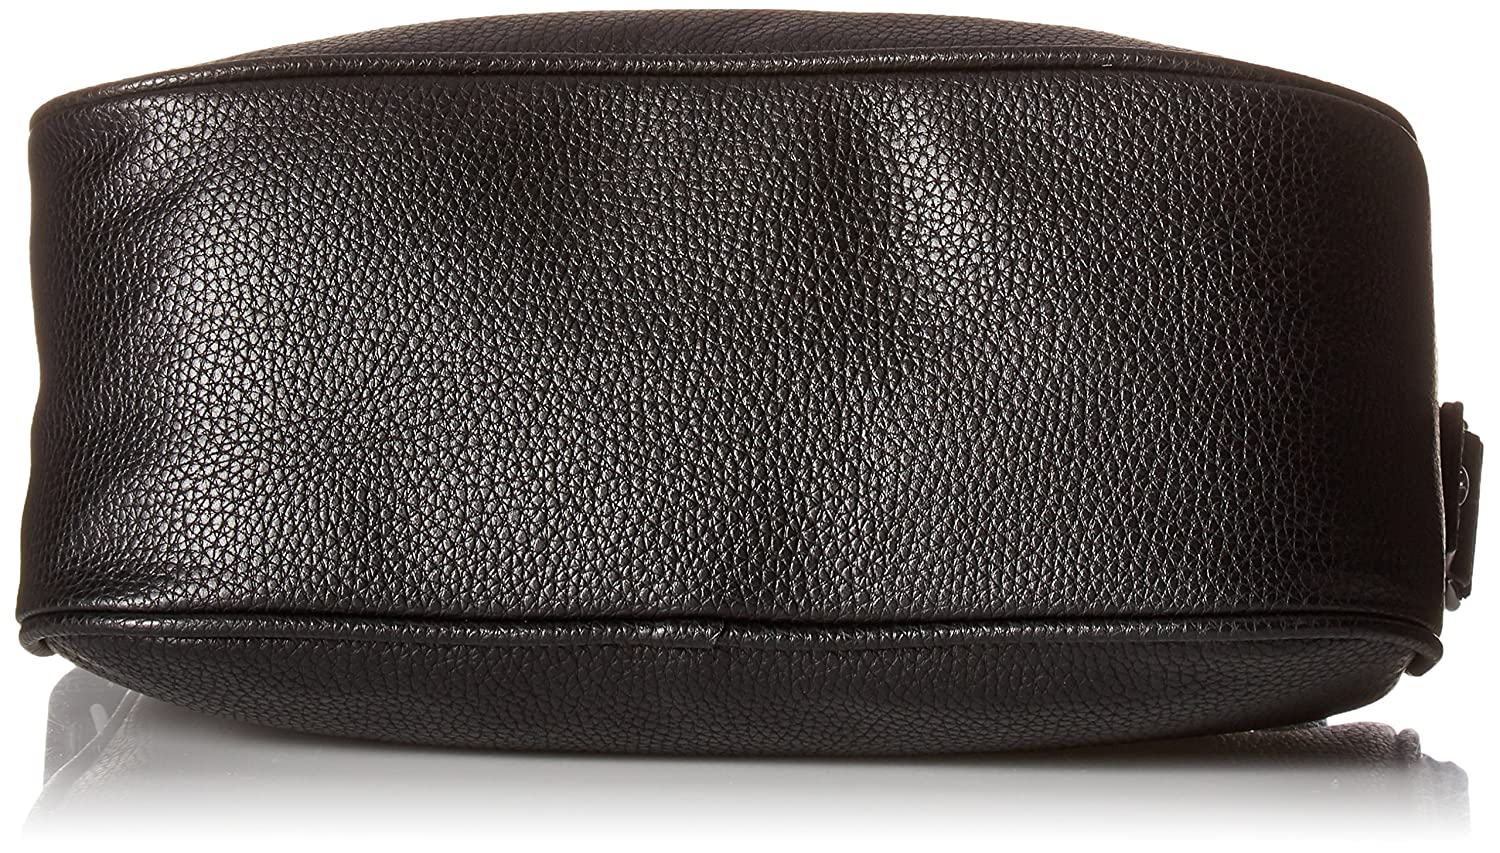 Amazon.com: Kipling Callie Solid PU Crossbody Bolsa, negro ...